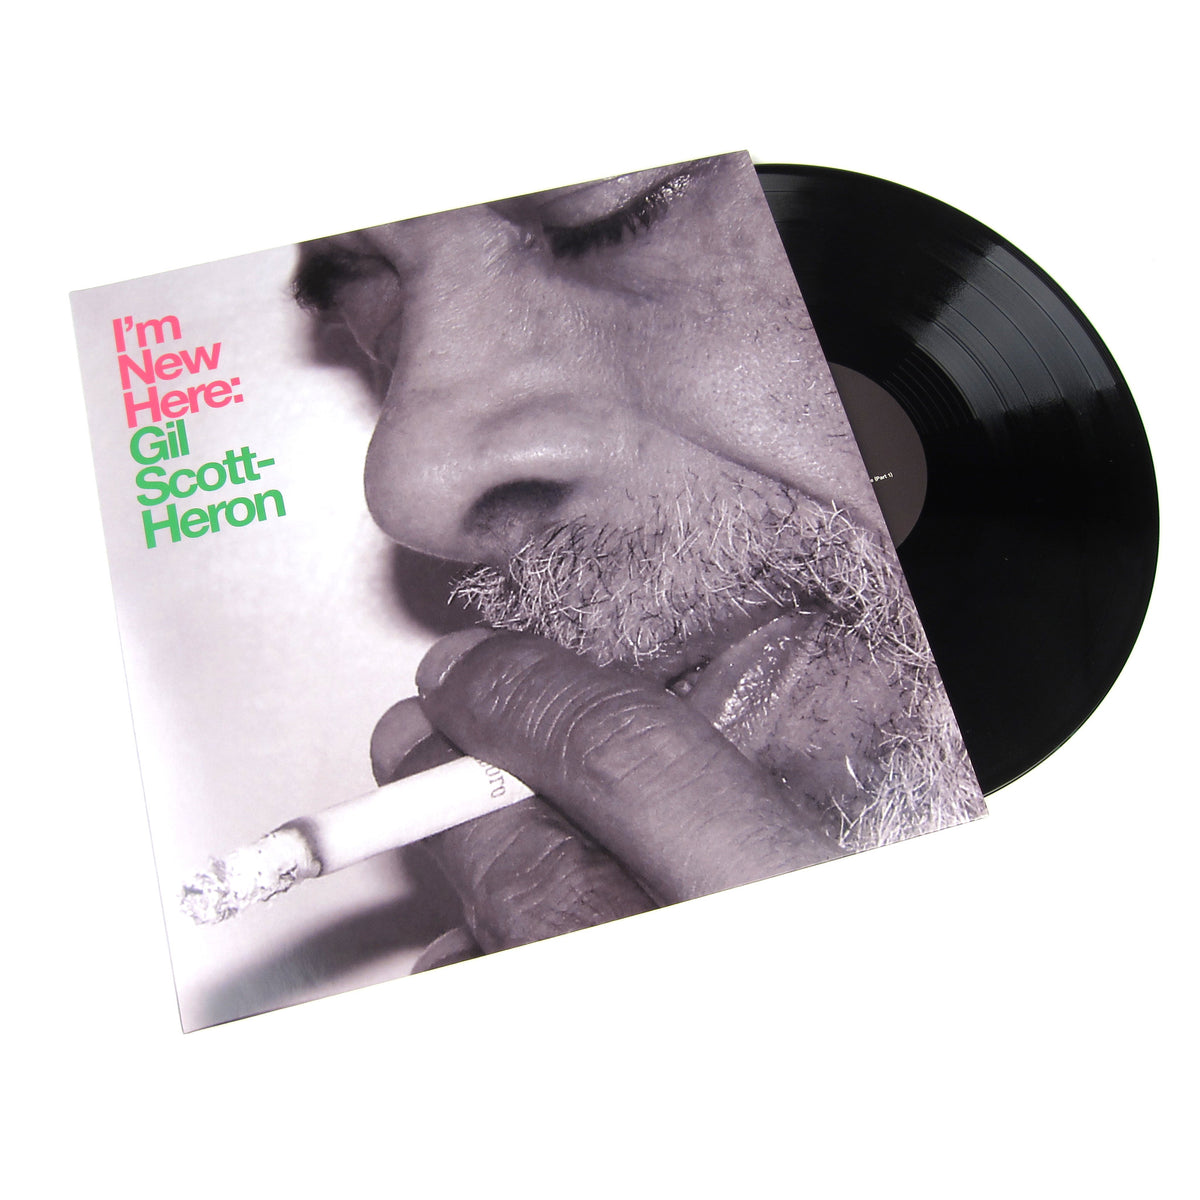 Gil Scott-Heron: I'm New Here Vinyl LP